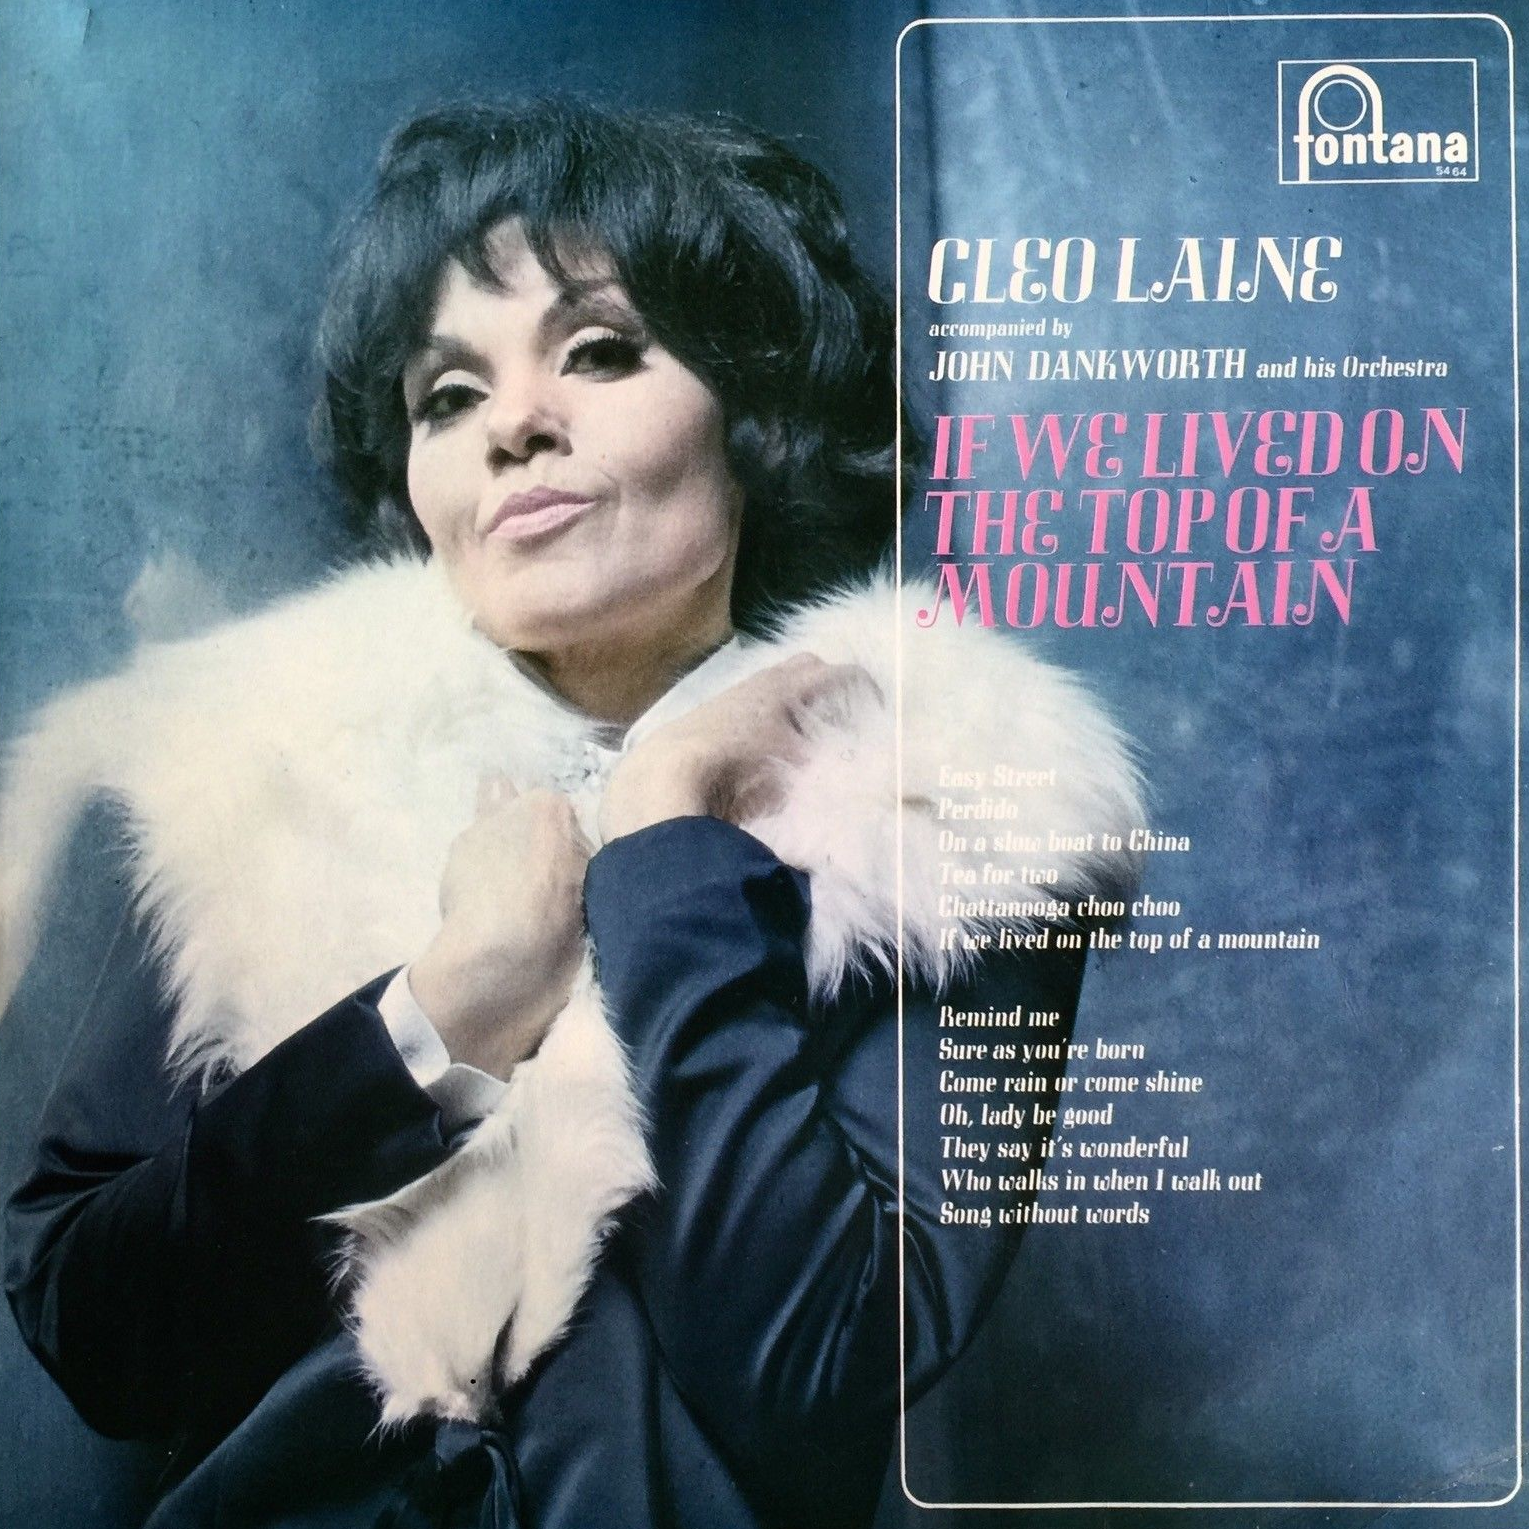 If We Lived On The Top Of A Mountain by Cleo Laine (Fontana, 1968).